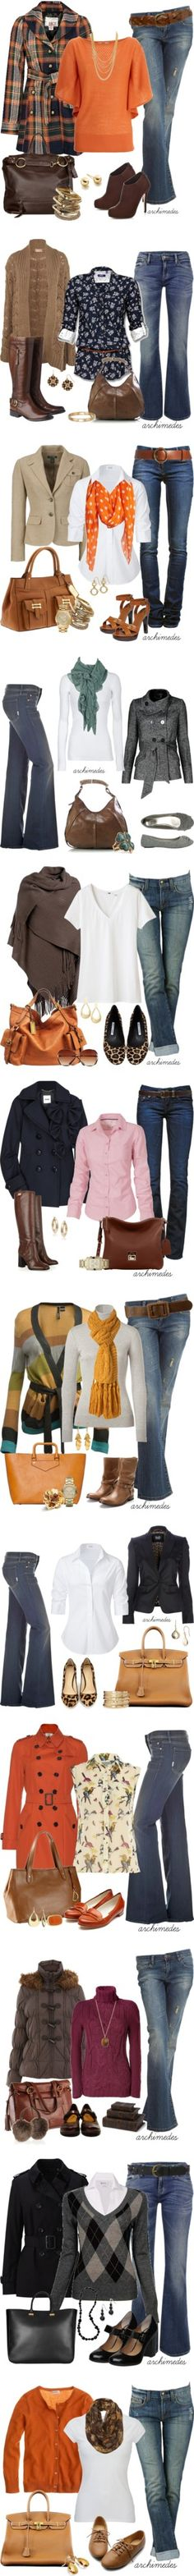 Great outfit ideas!